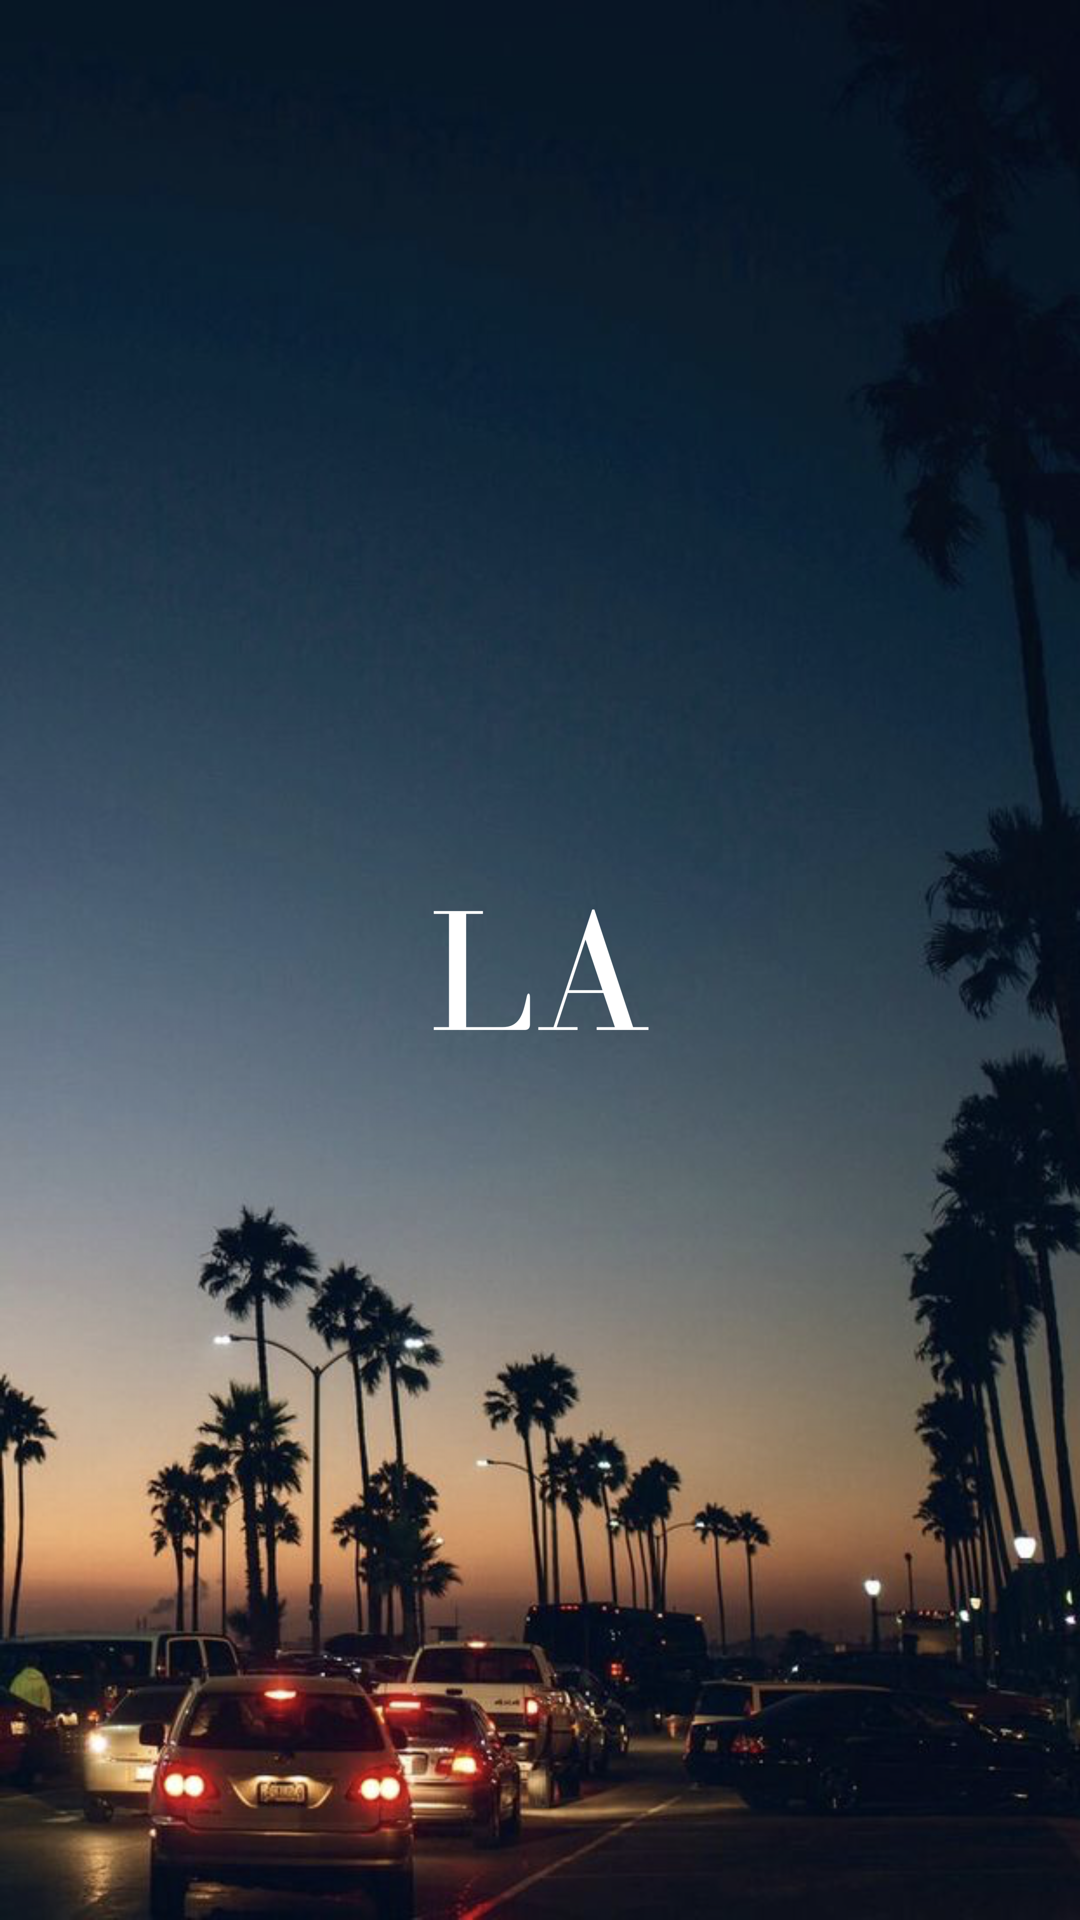 Los Angeles Wallpaper In 2019 Tree Wallpaper Iphone Los